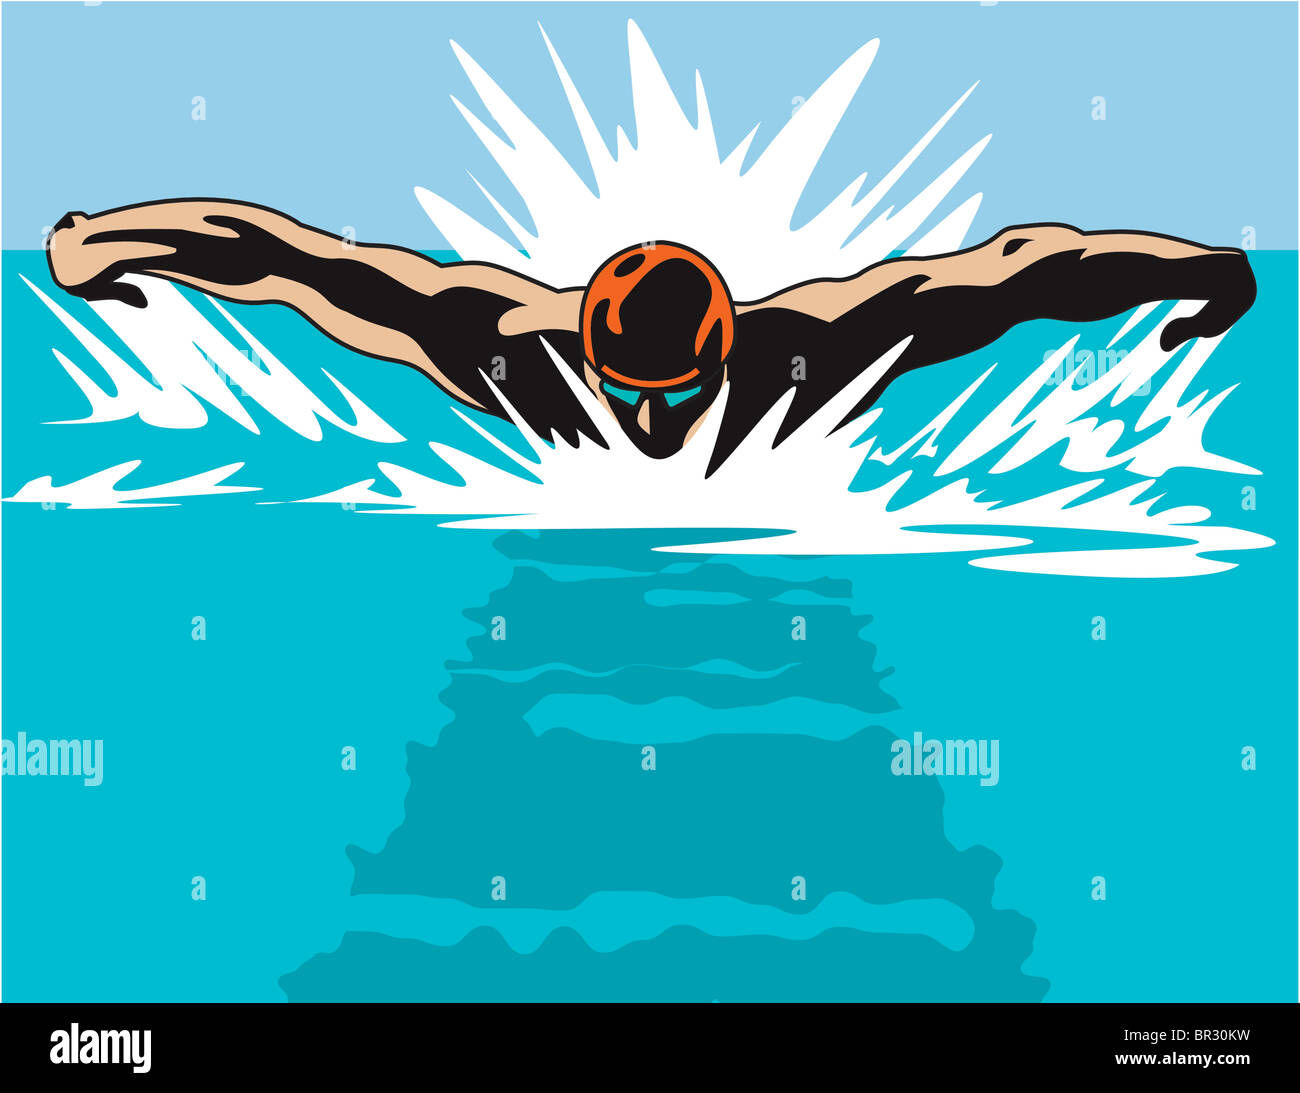 An illustration of a swimmer from a head on perspective - Stock Image